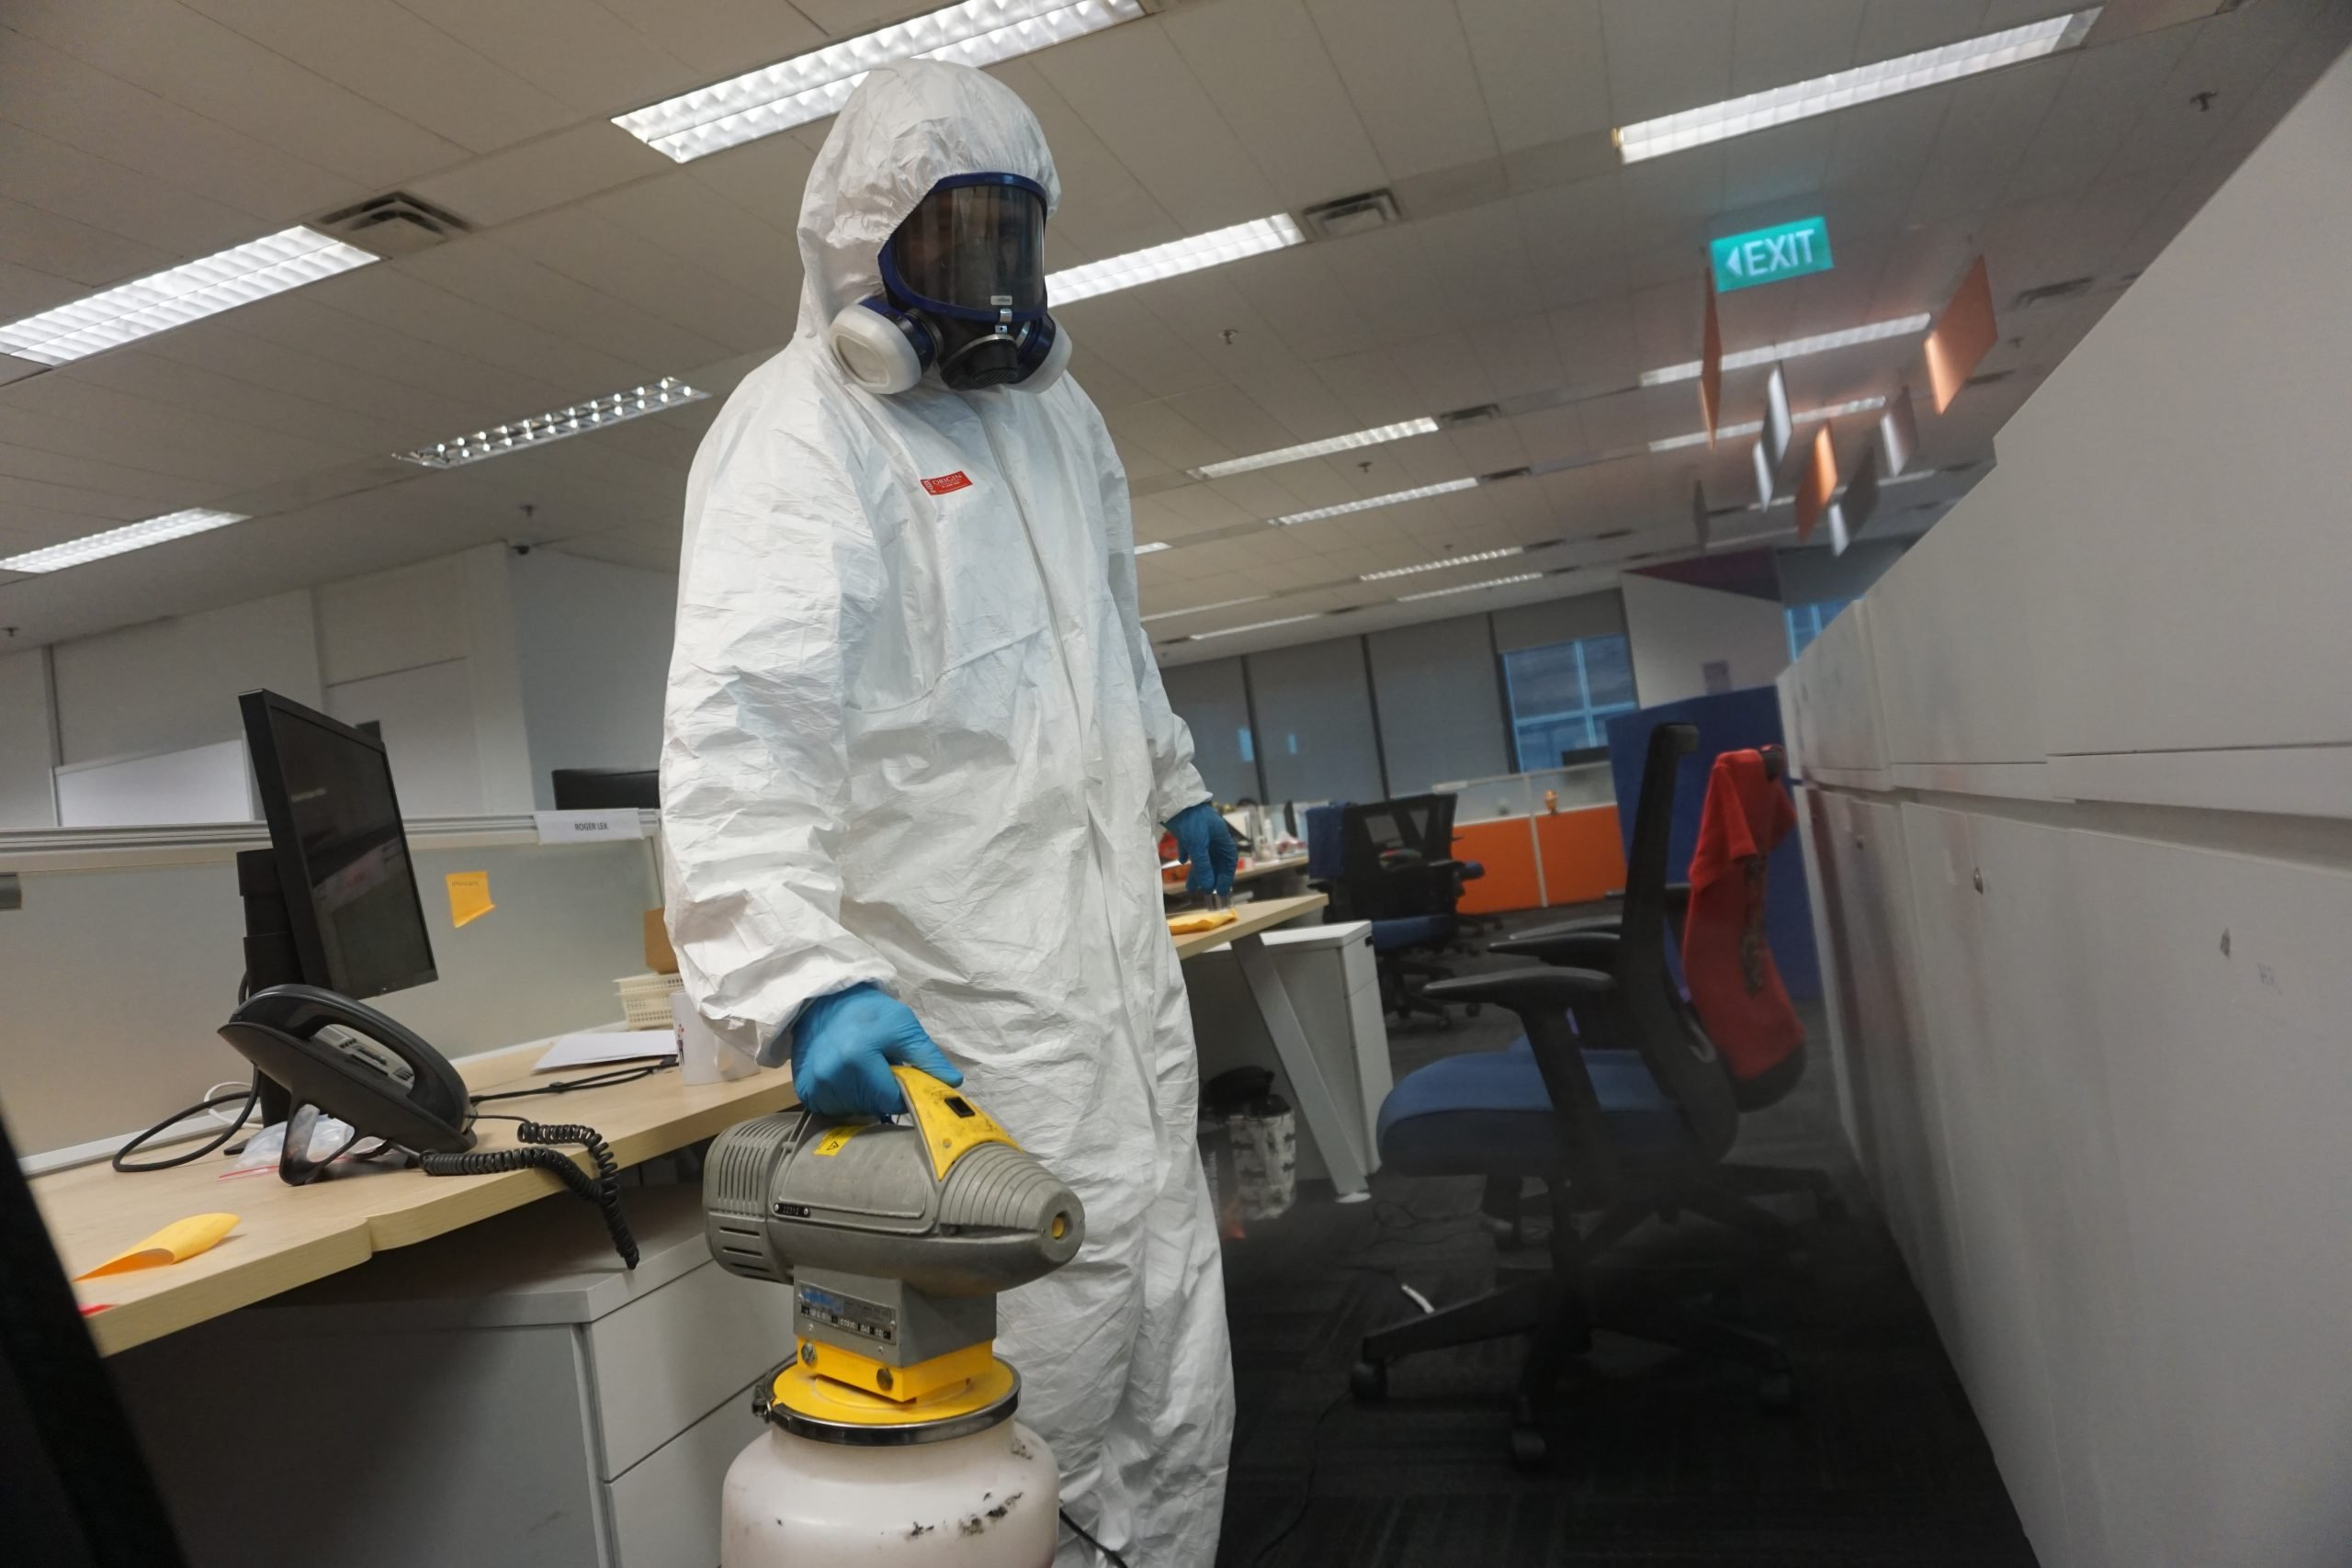 Environmental Cleaning and Disinfection: Standard Precautions for Businesses